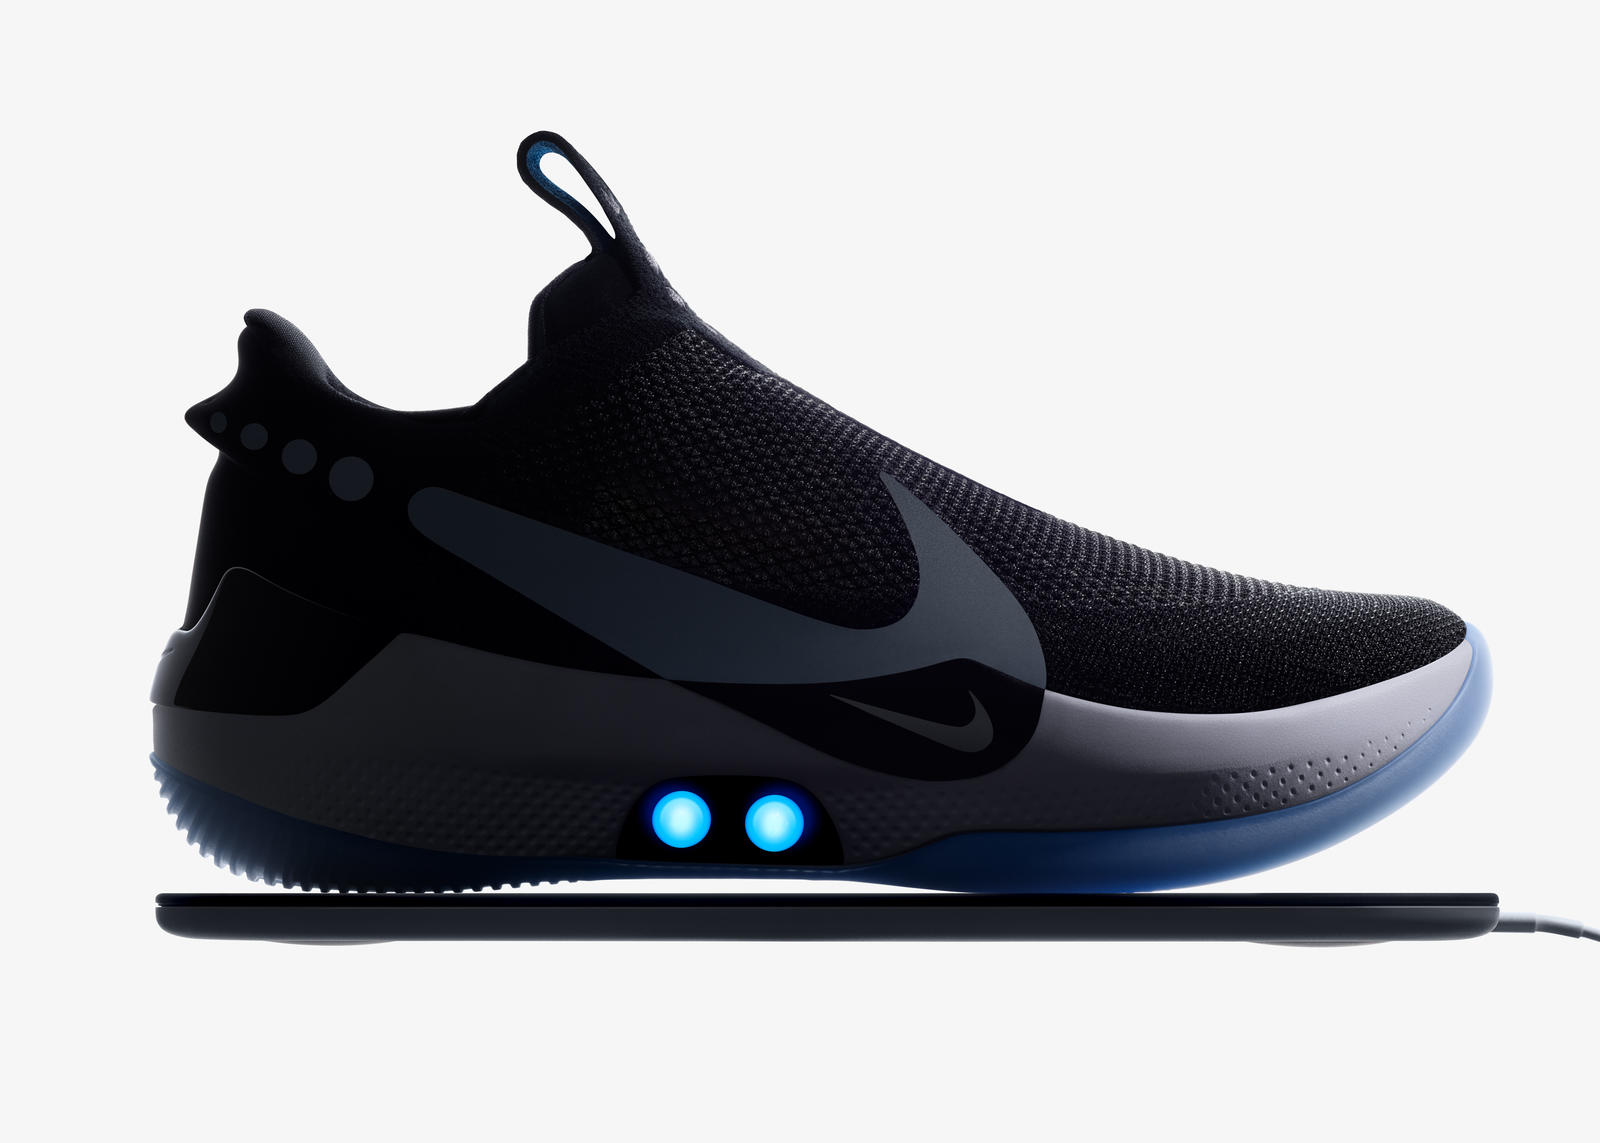 e7e214dd3f Introducing the Nike Adapt BB - Nike News